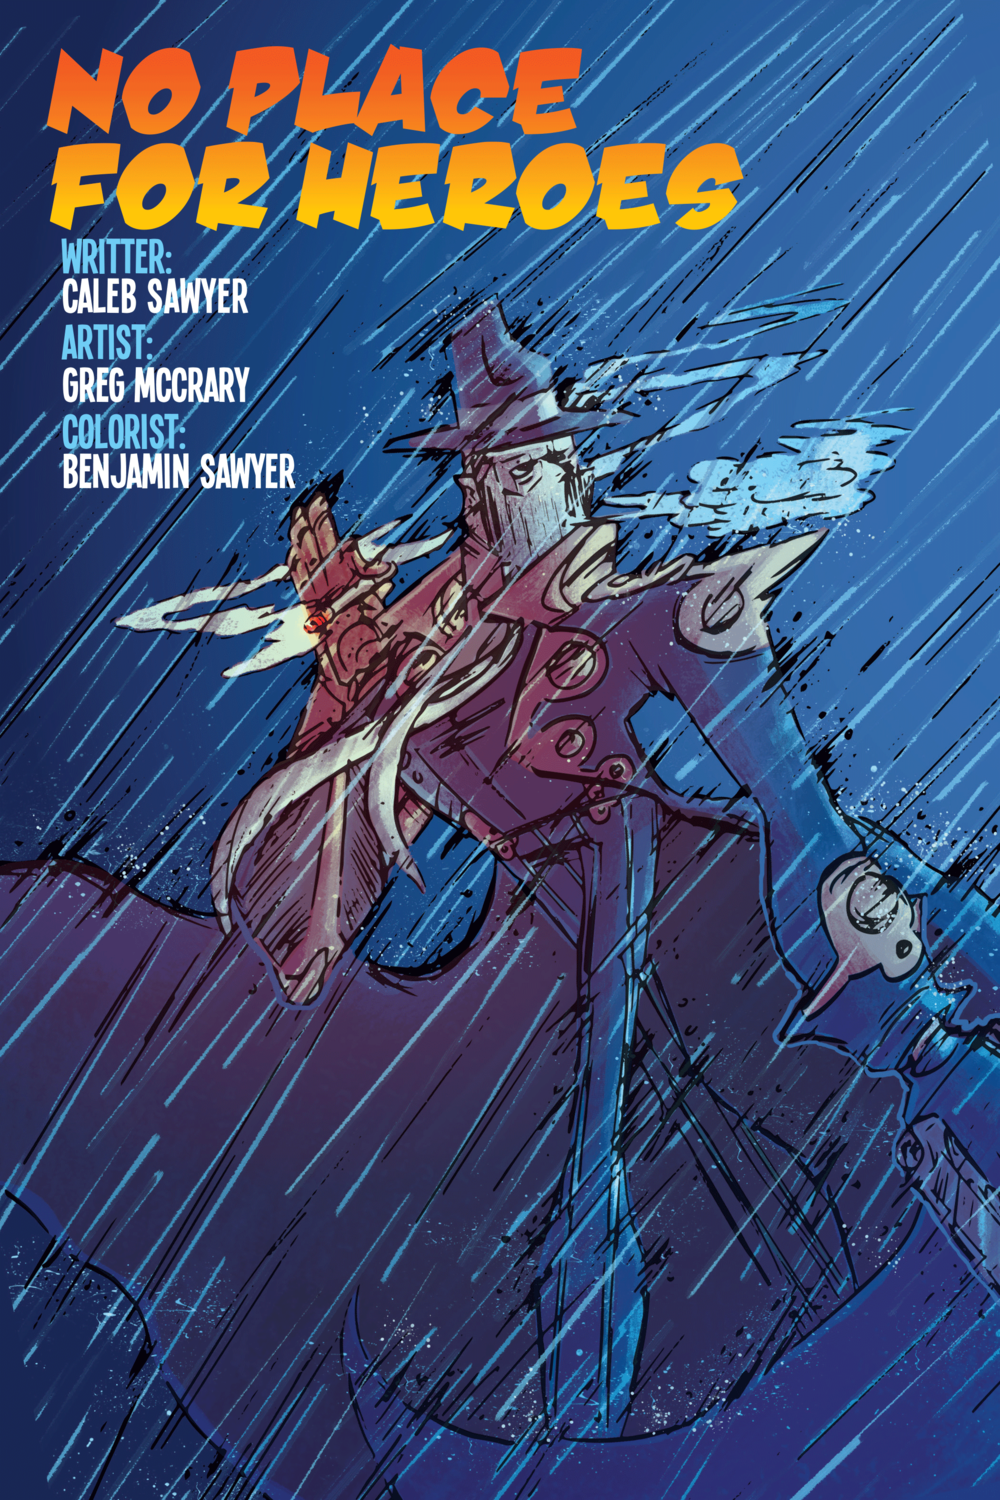 NO PLACE FOR HEROES: COVER PAGE